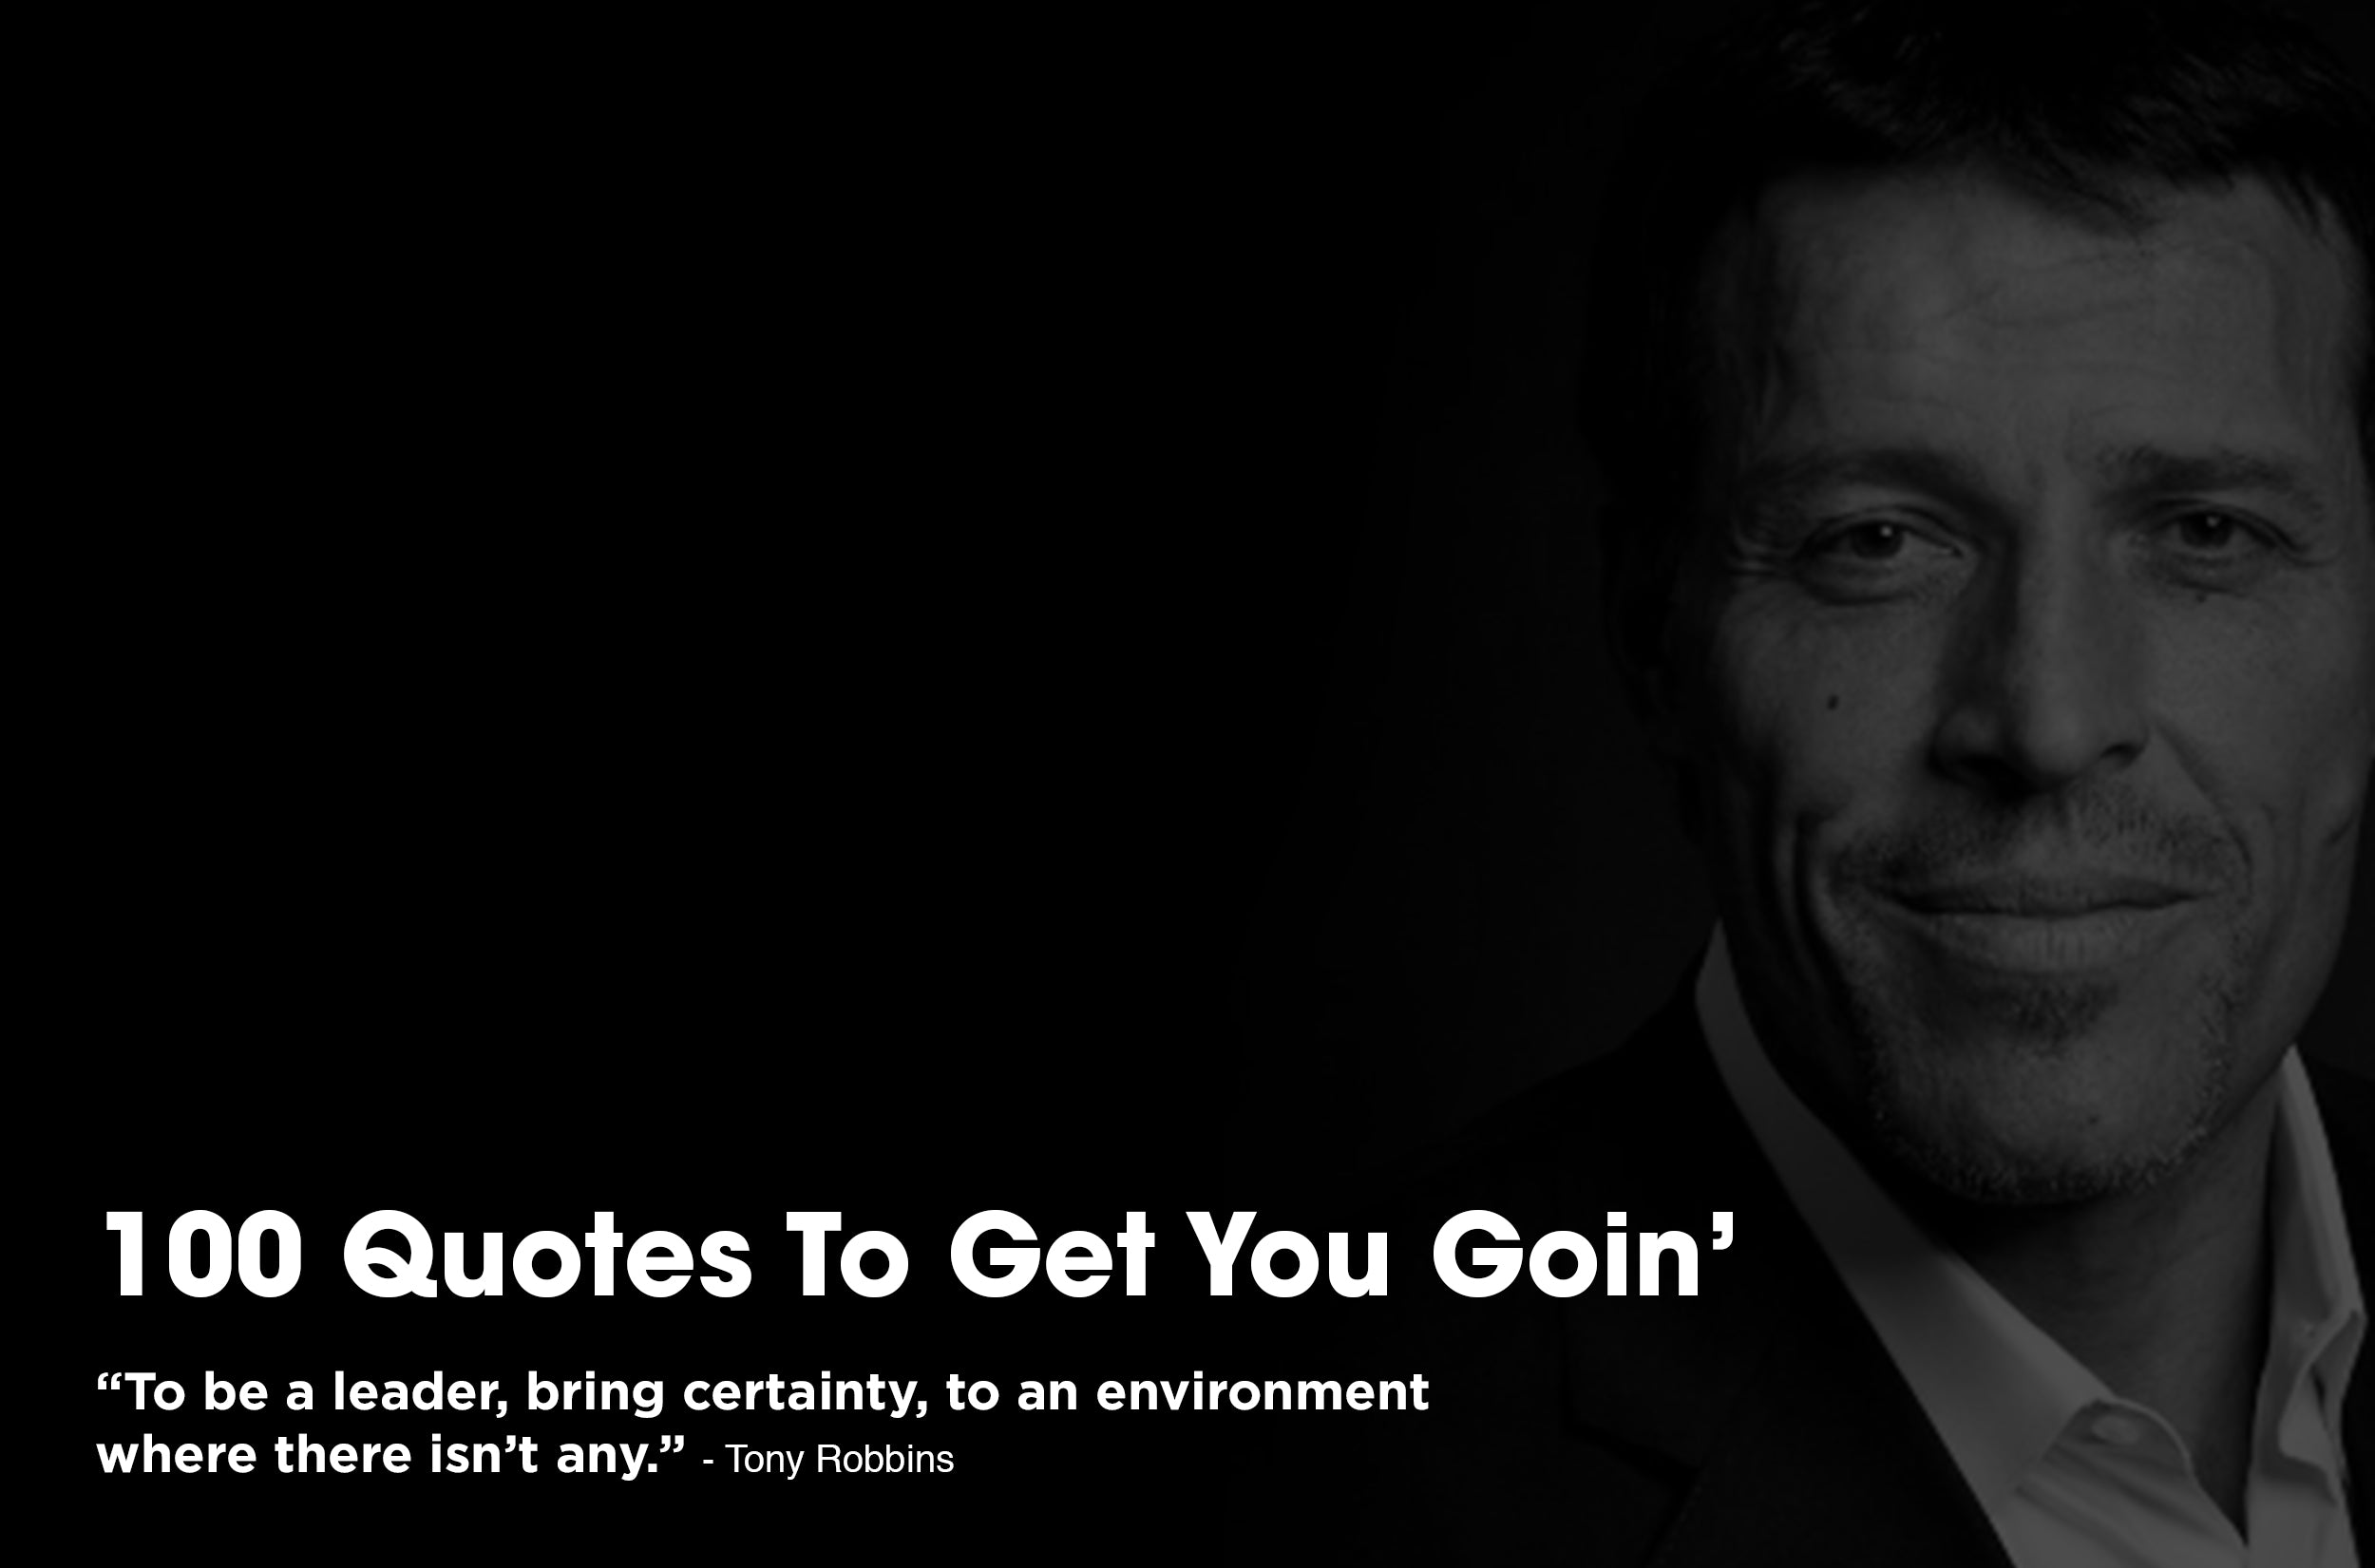 100 Short Quotes To Get You Goin'